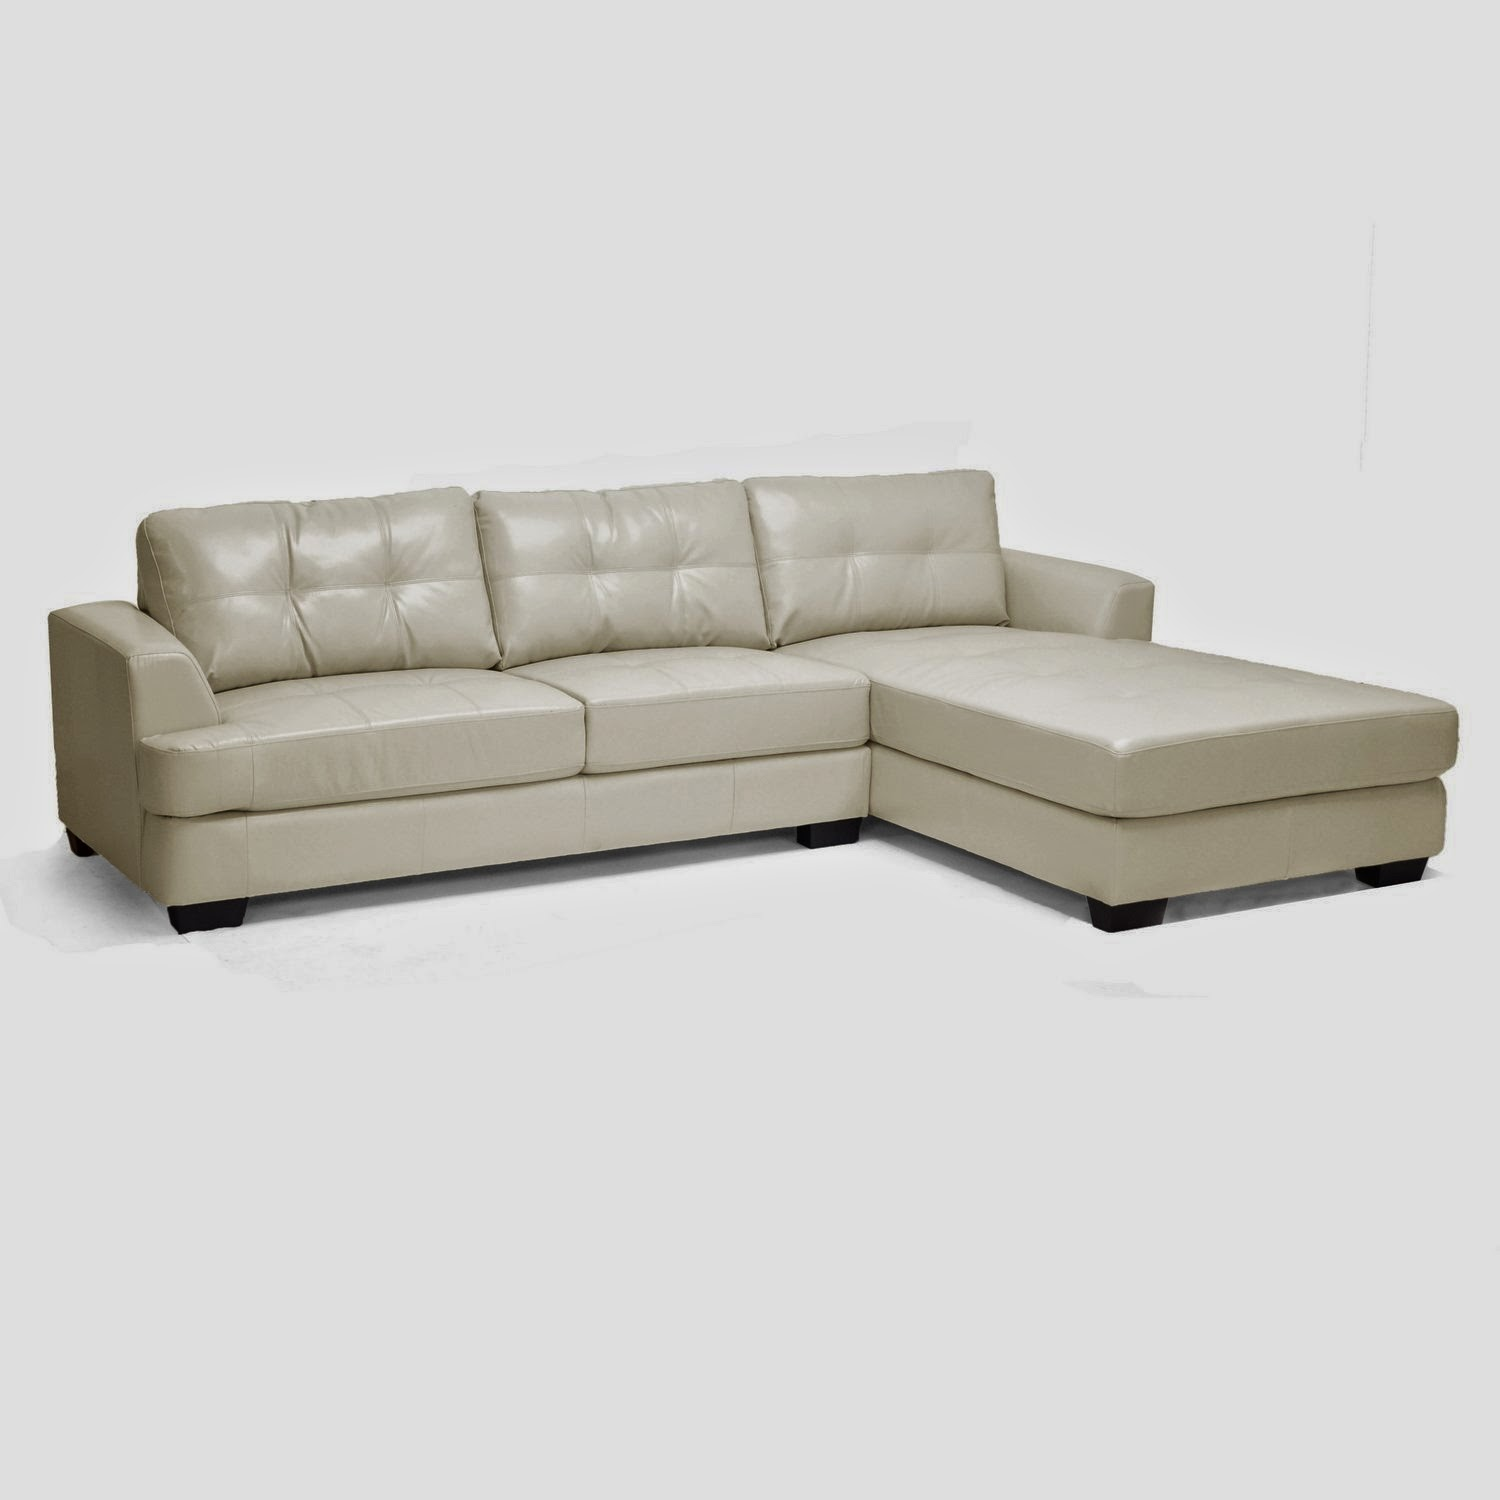 Couch With Chaise Leather Couch With Chaise Lounge